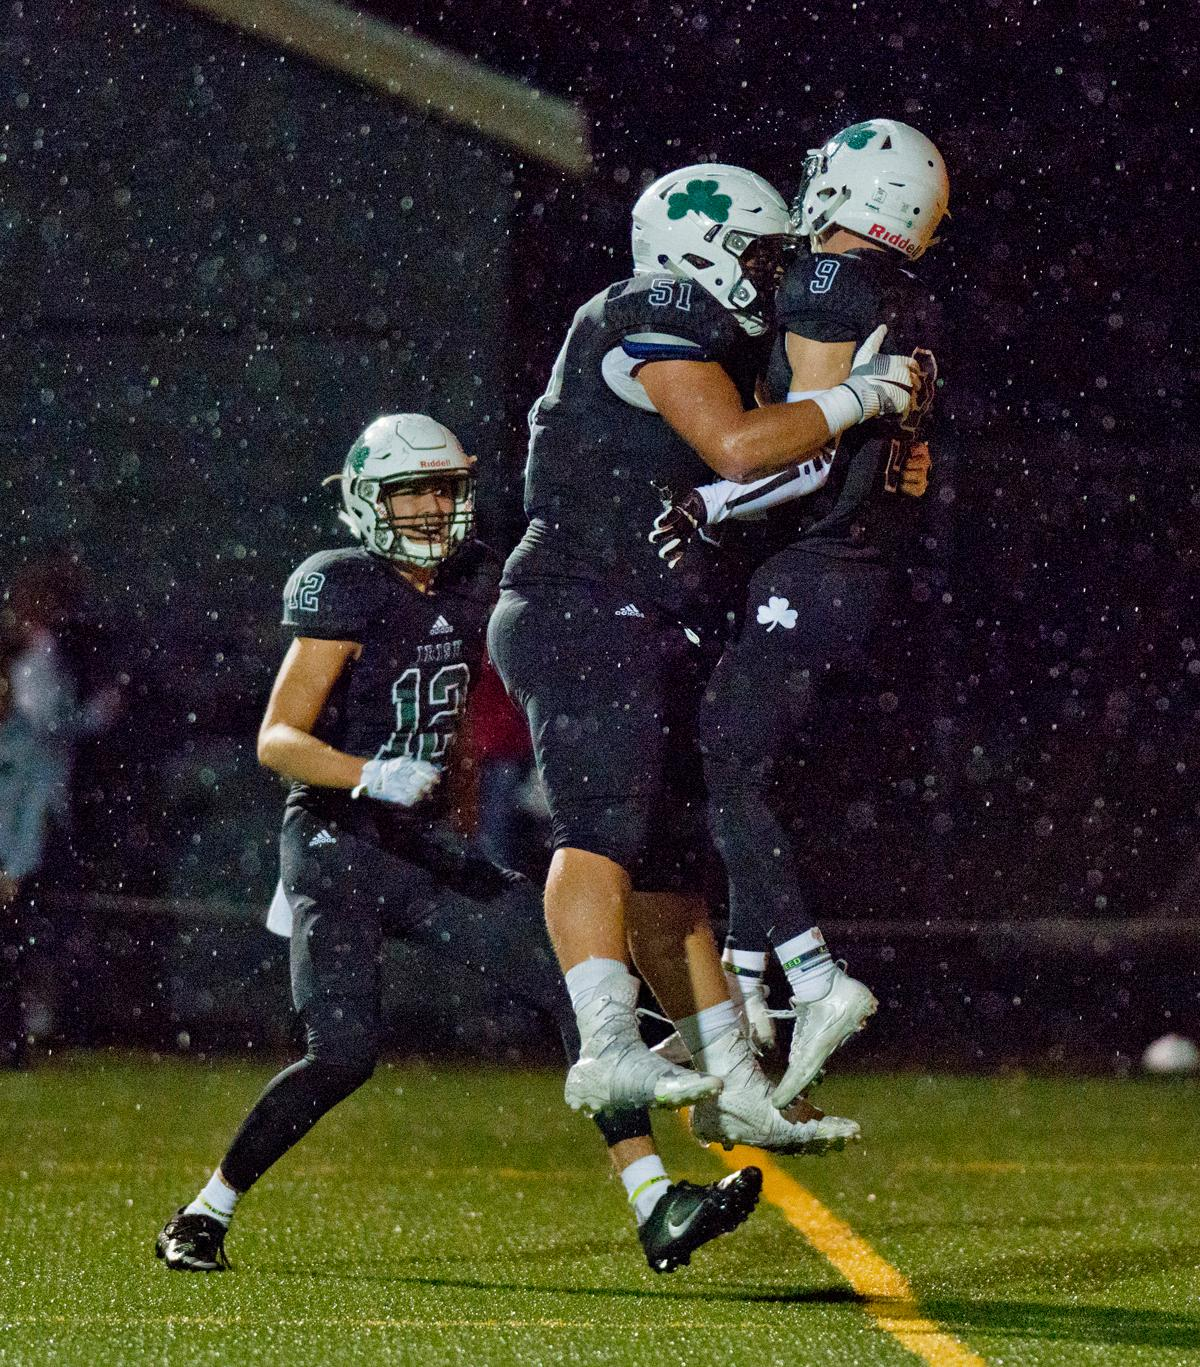 Sheldon Irish wide receiver Uta Mageo (#12), offensive lineman Austin Lasby (#51) and wide receiver Jack Folsom (#9) celebrate in the end zone after Folsom scored a touchdown. On a rainy Monday evening Sheldon defeated West Salem 41-7. The game had been postponed from Friday due to unhealthy levels of smoke in the atmosphere due to nearby forest fires. Photo by Dan Morrison, Oregon News Lab